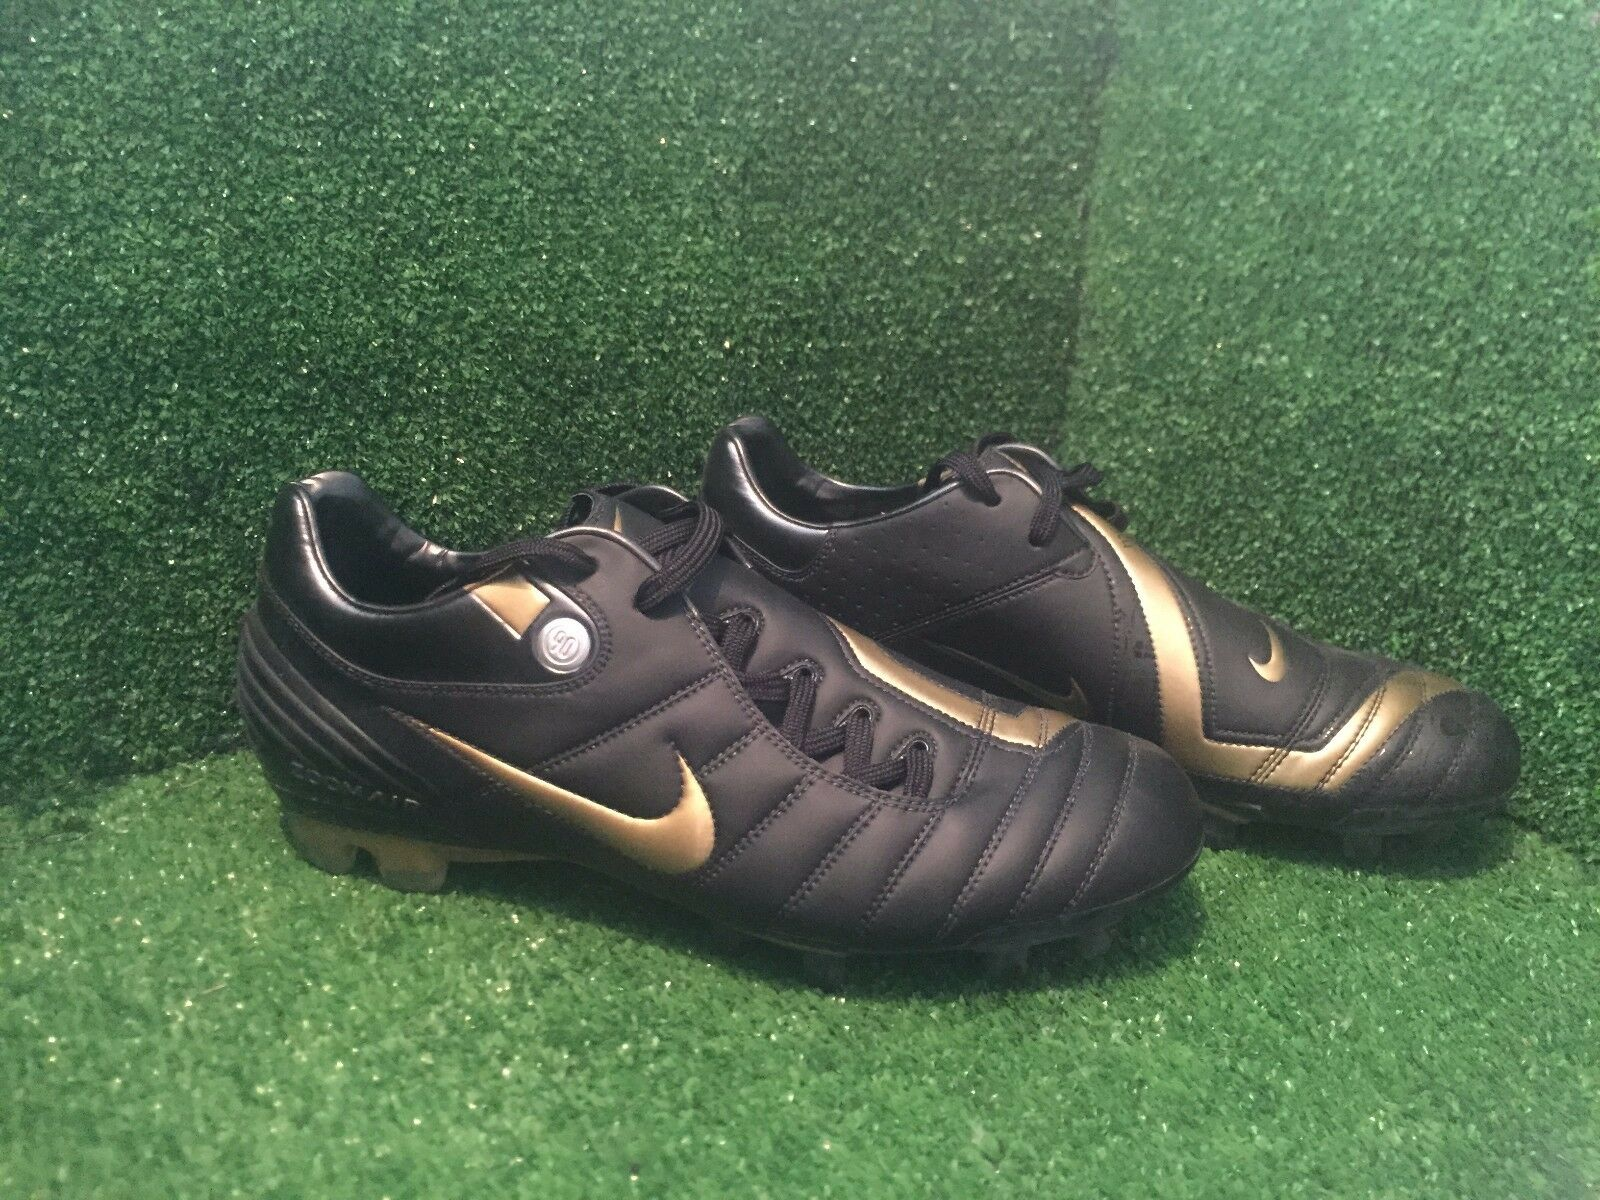 NIKE AIR ZOOM INSGESAMT 90 SUPREMACY FG I II AZT FOOTBALL Stiefel 9 42,5